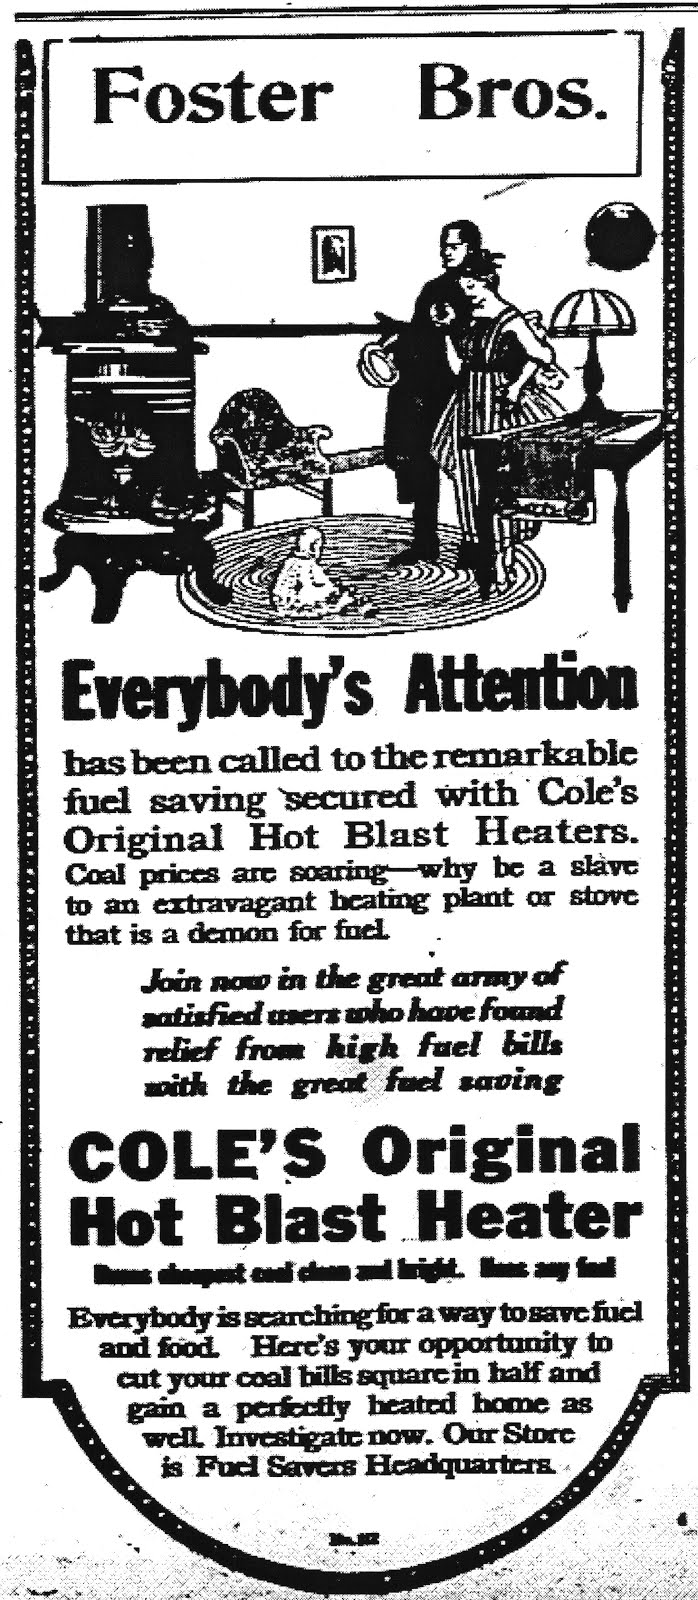 Foster Bros. 1918 Ad